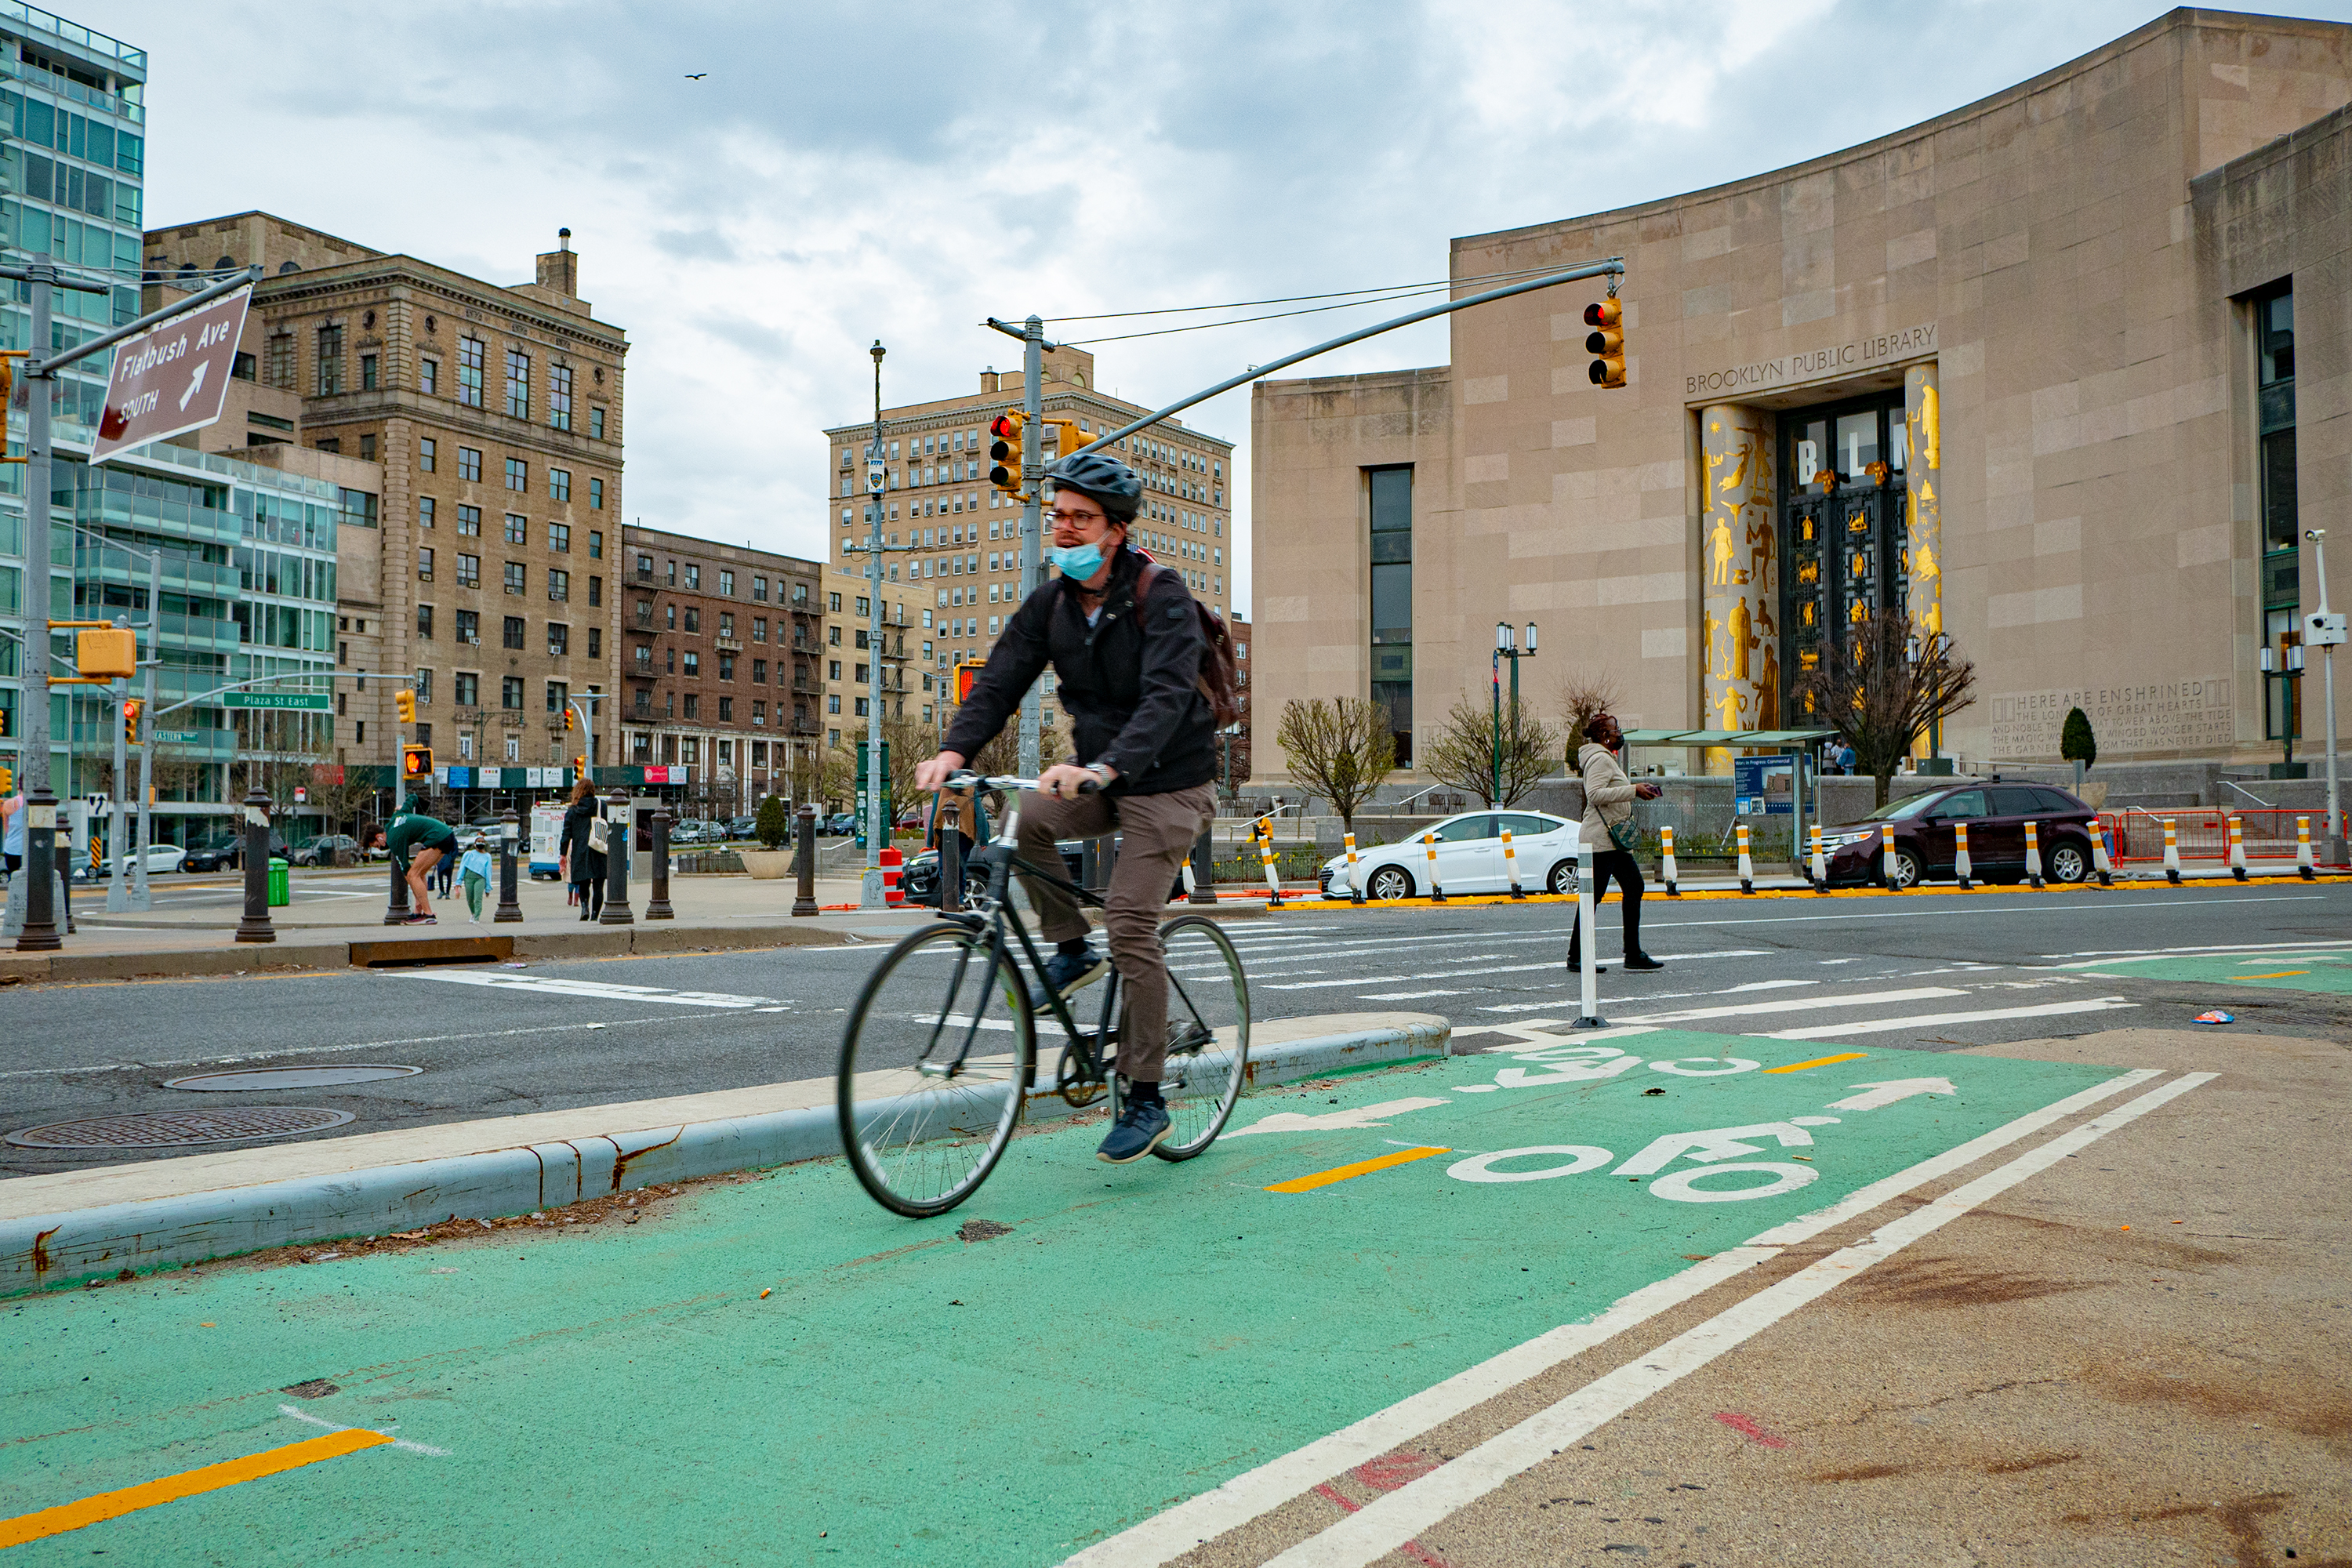 A cyclist uses the greenway at Grand Army Plaza, in Brooklyn, March 31, 2021.